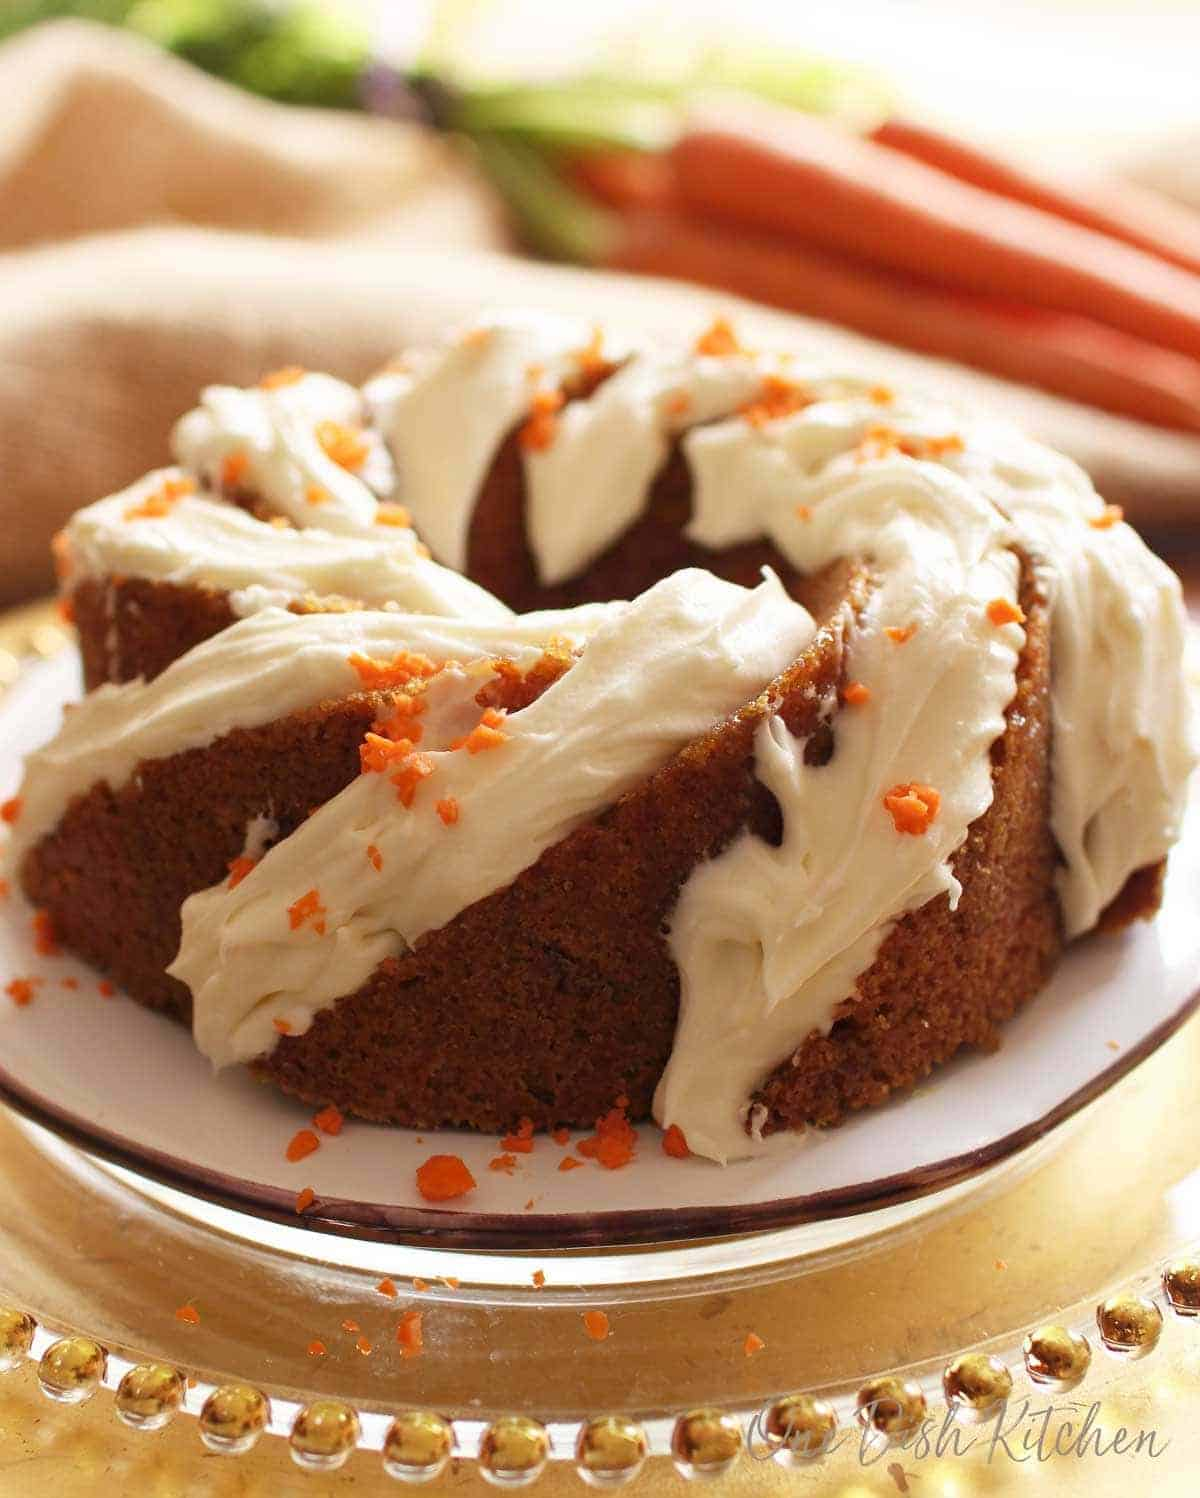 A frosted carrot bundt cake with bits of chopped carrots on top